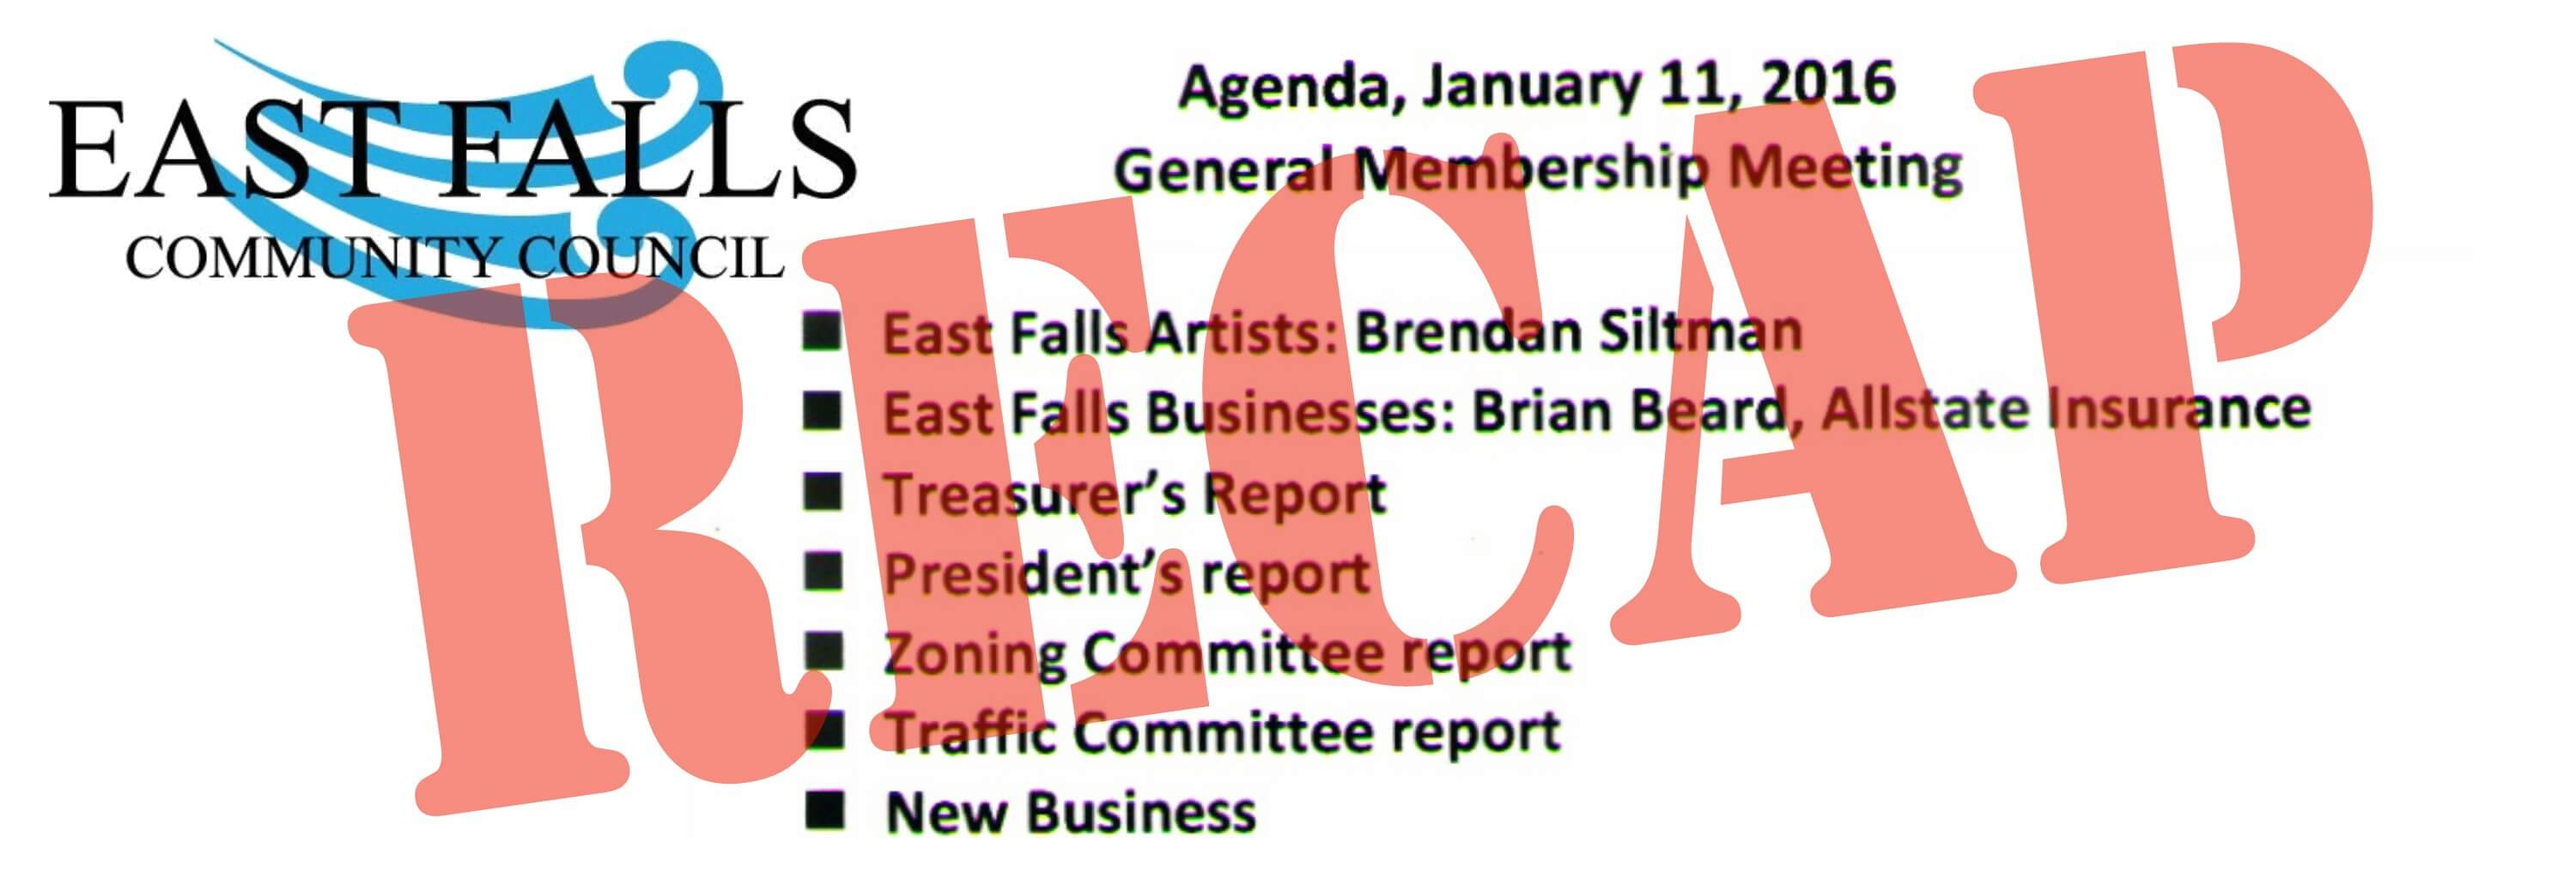 Eastfallslocal agenda 1-11-16 resize RECAP